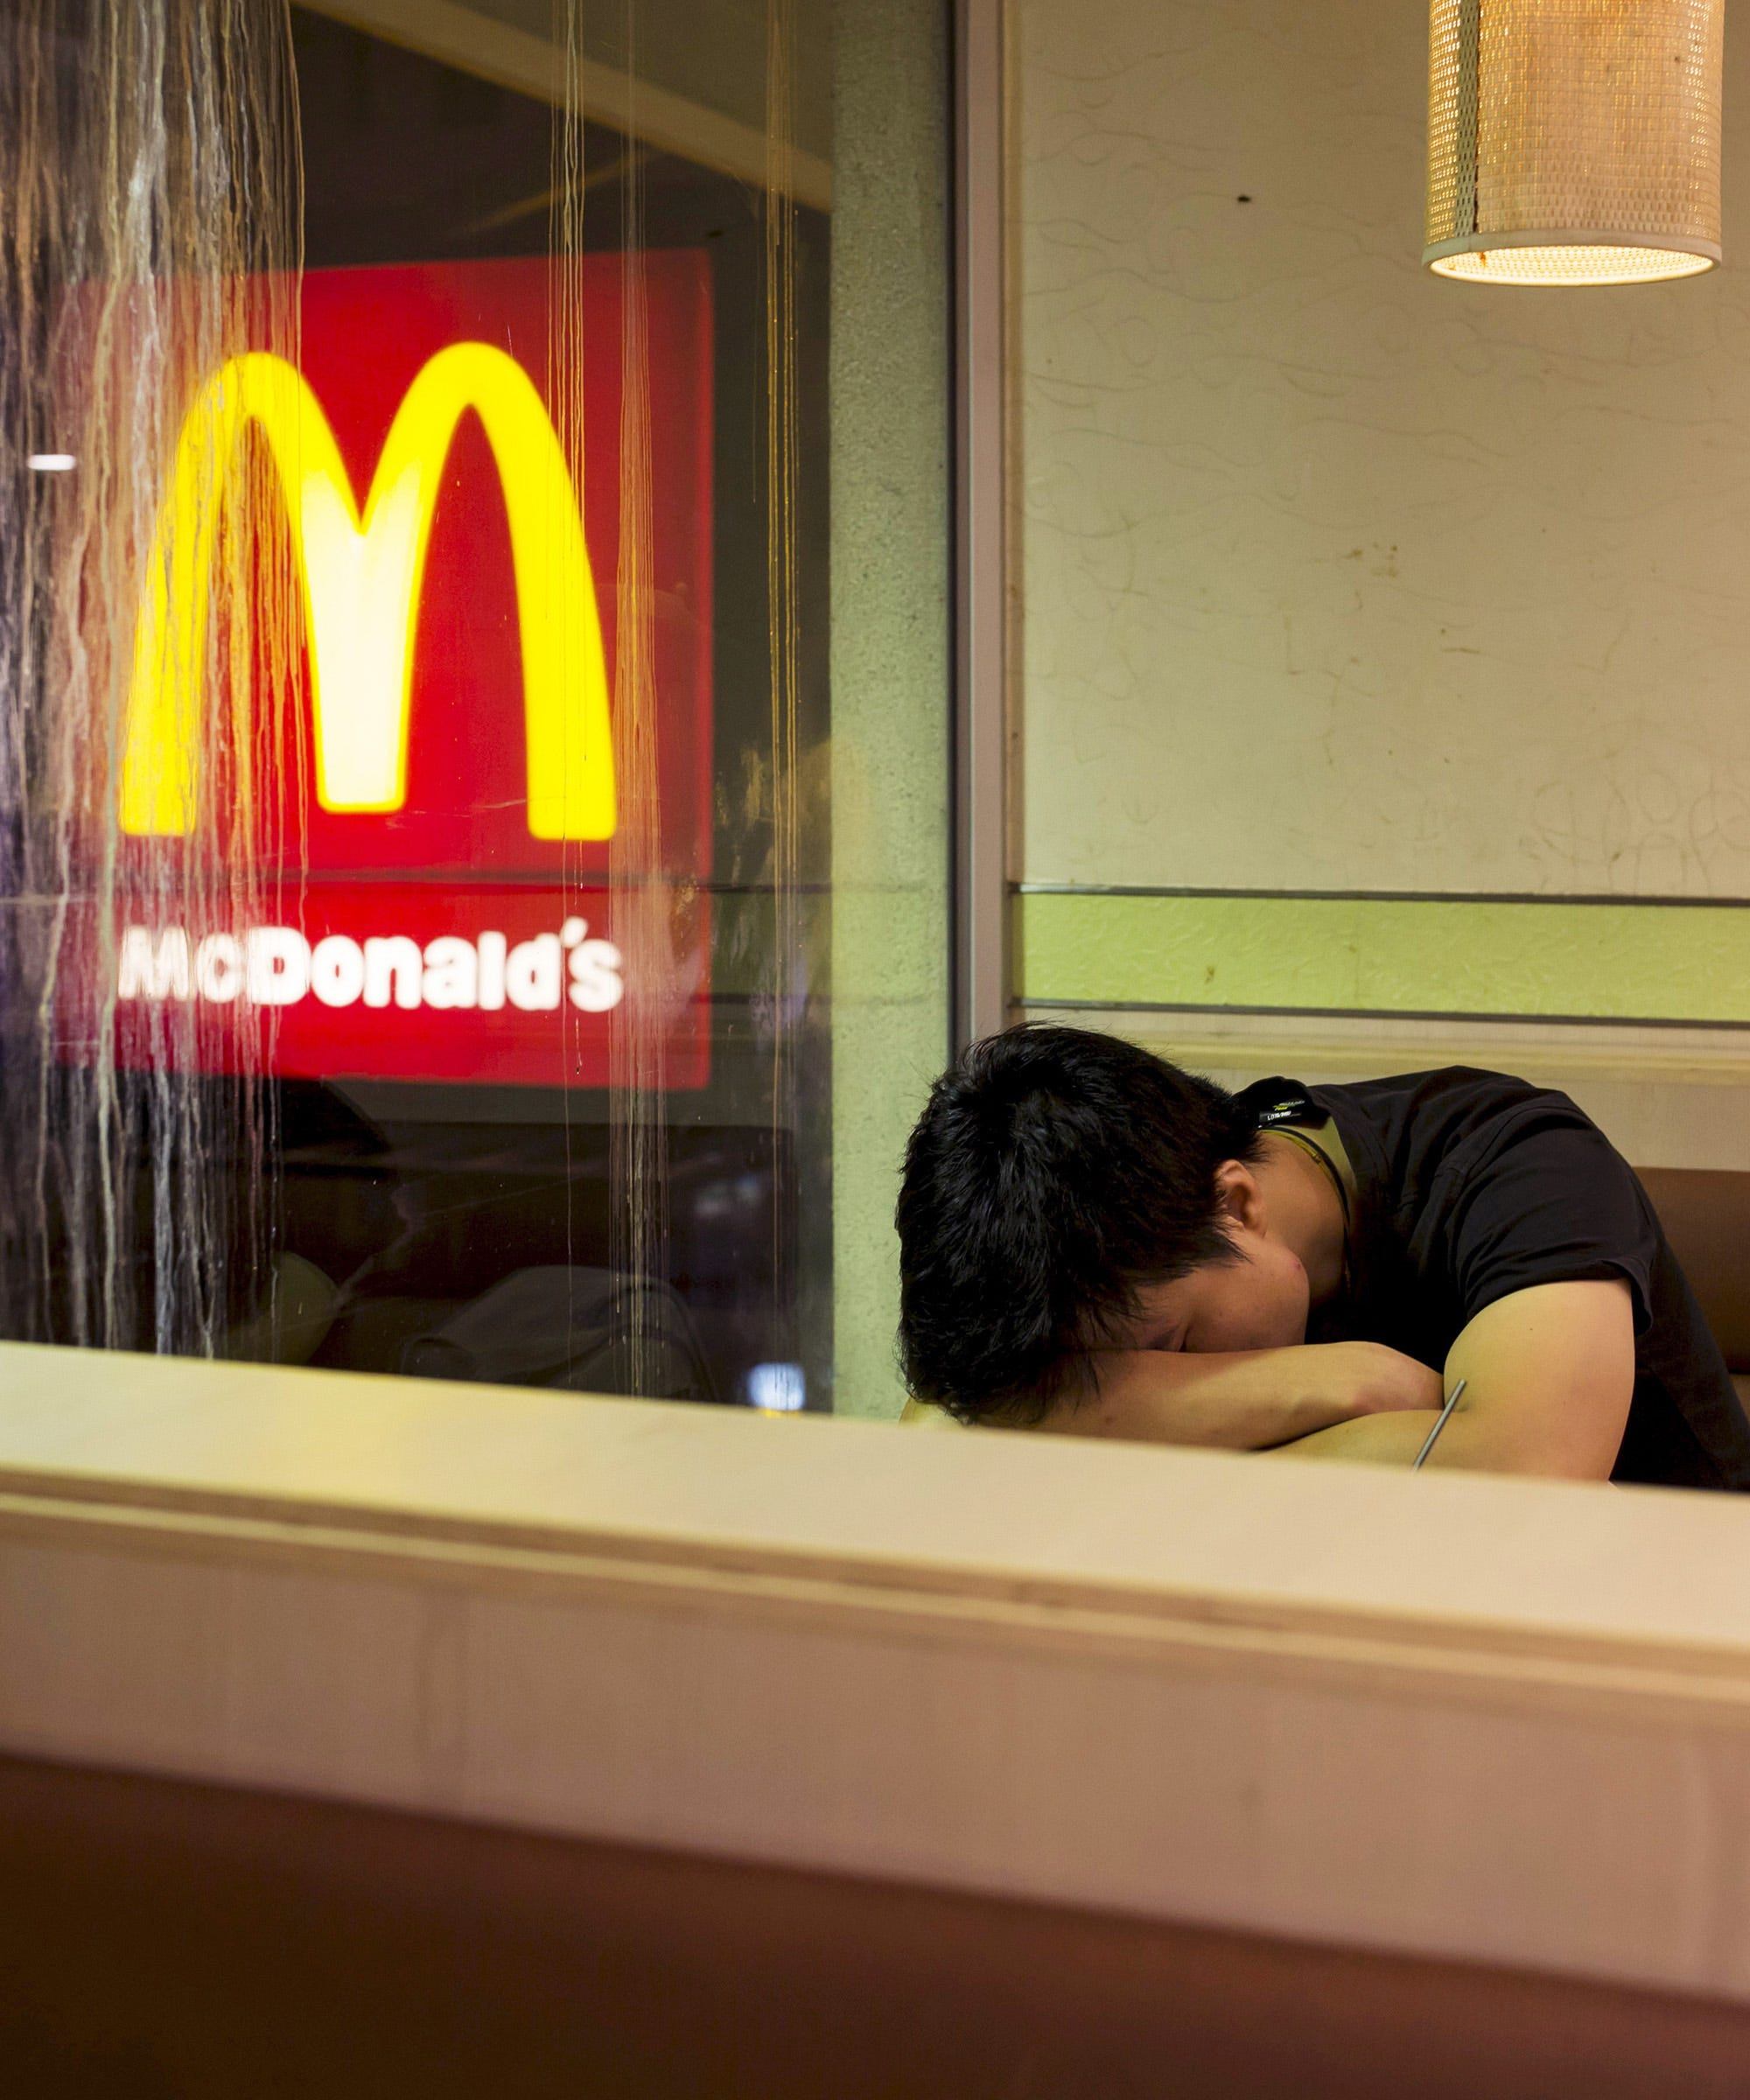 McDonalds in Hong Kong turned into shelters